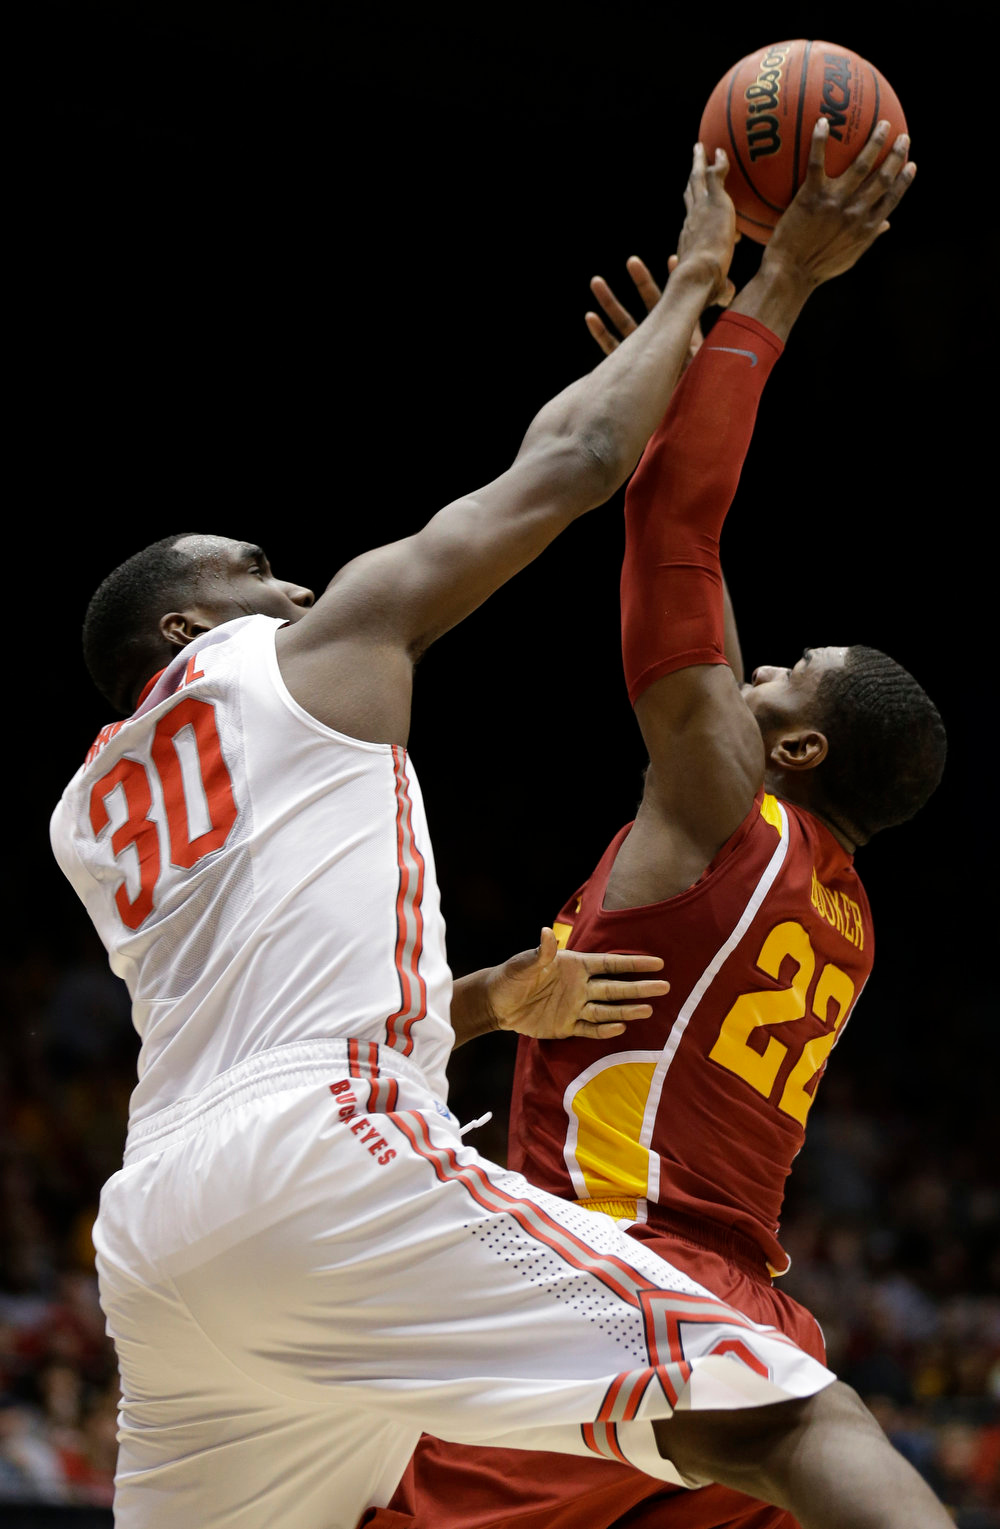 . Iowa State forward Anthony Booker (22) and Ohio State forward Evan Ravenel (30) go for a rebound in the first half of a third-round game of the NCAA college basketball tournament Sunday  March 24, 2013, in Dayton, Ohio. (AP Photo/Al Behrman)